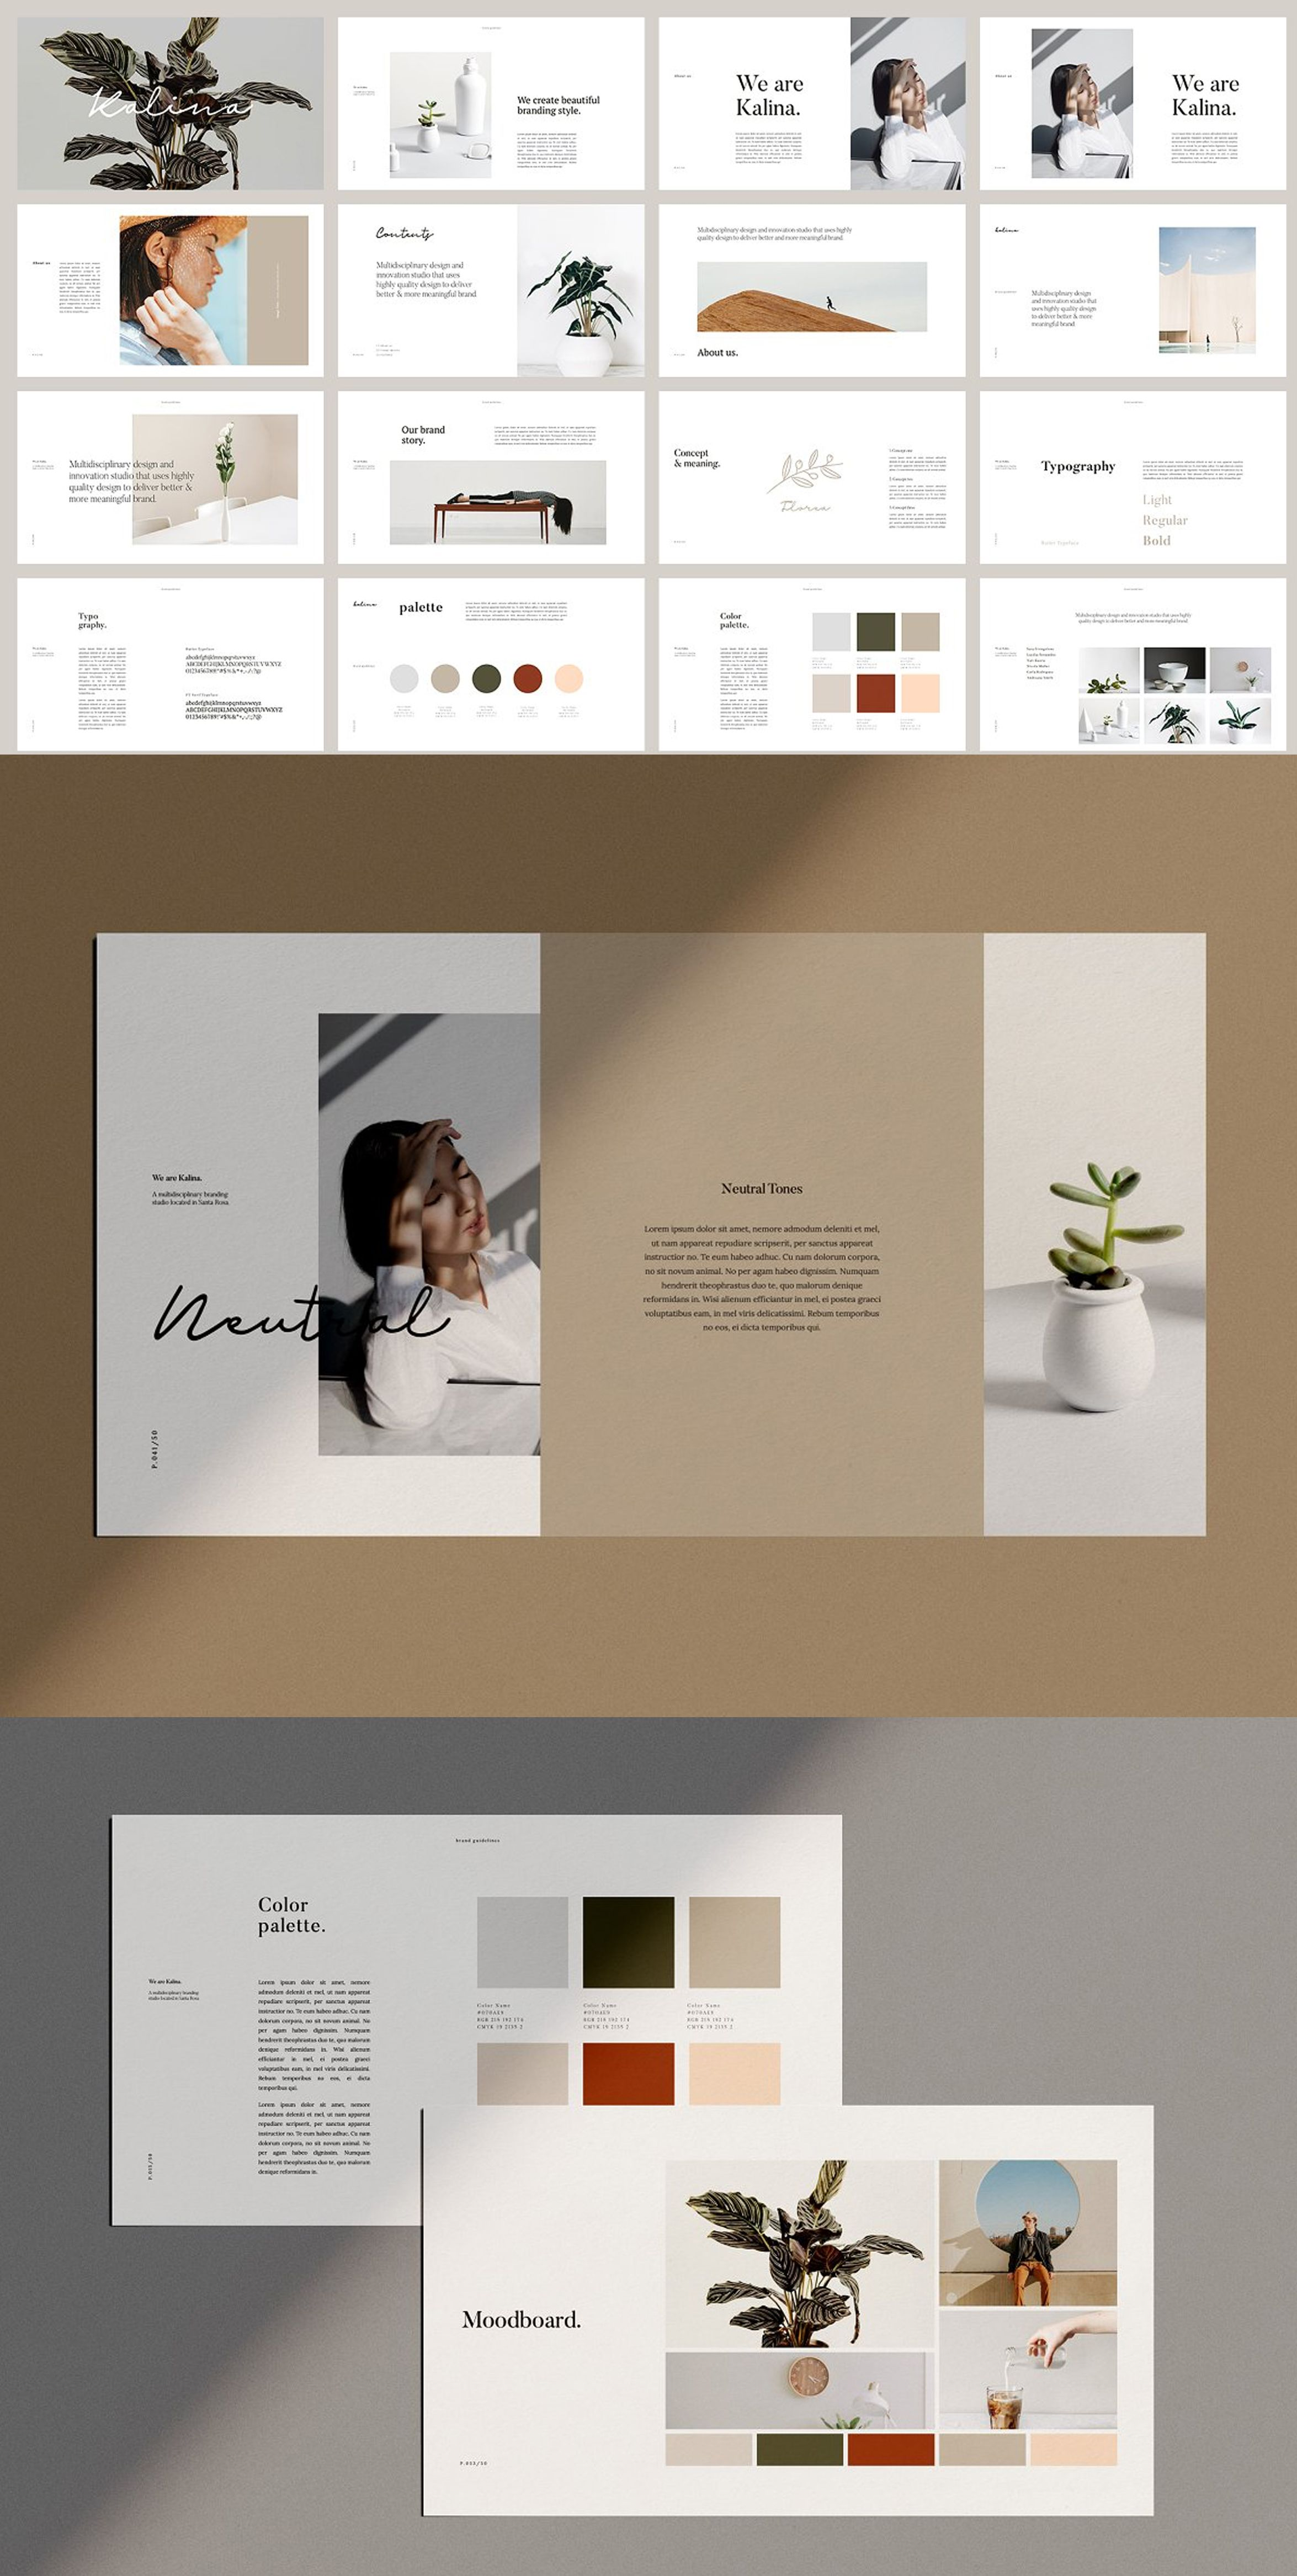 Kalina Powerpoint Brand Guidelines Presentation Design Layout Brand Presentation Brand Guidelines